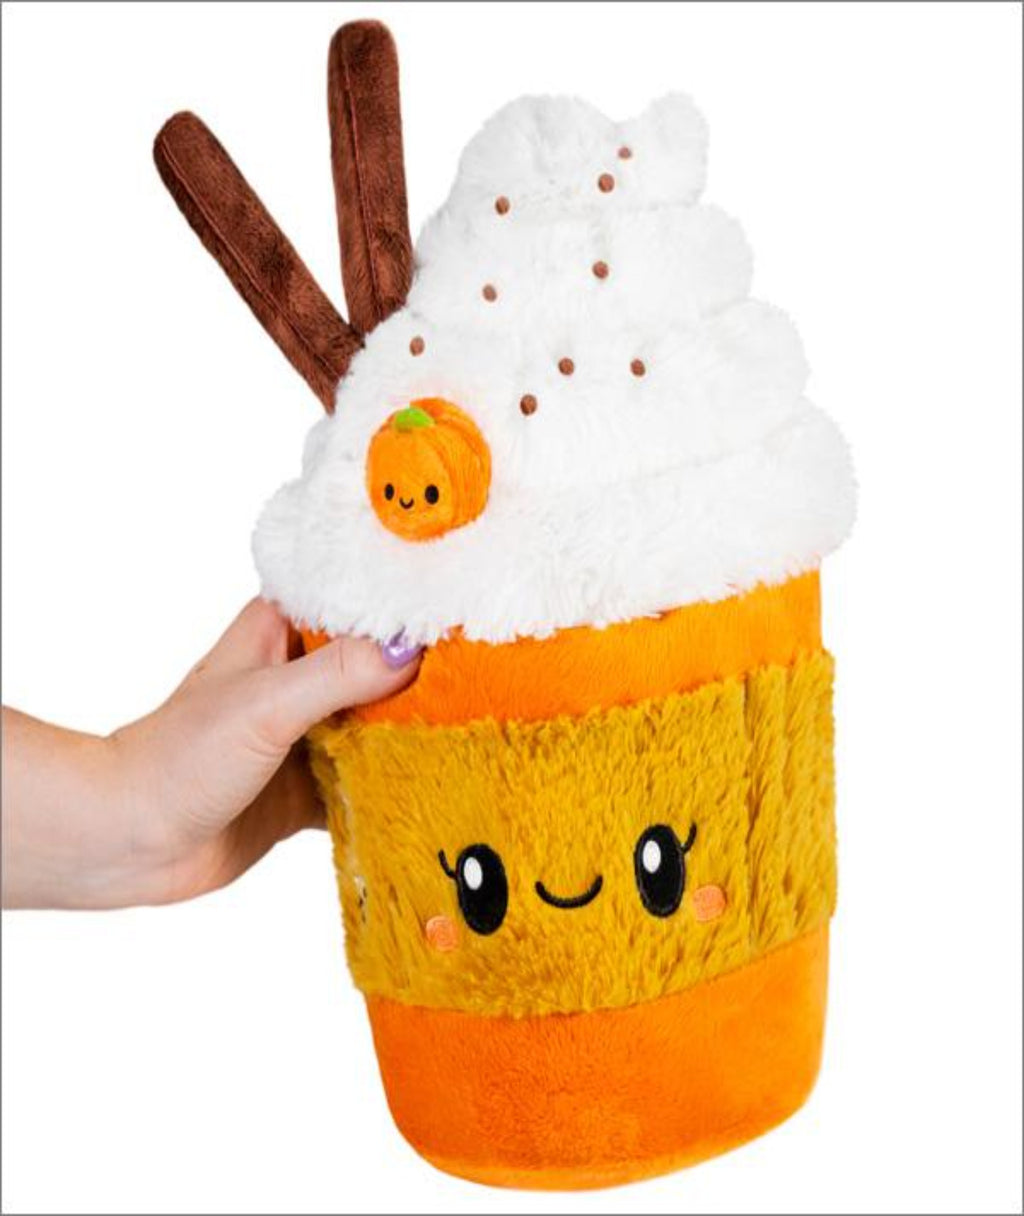 Squishable Mini Pumpkin Spice Latte